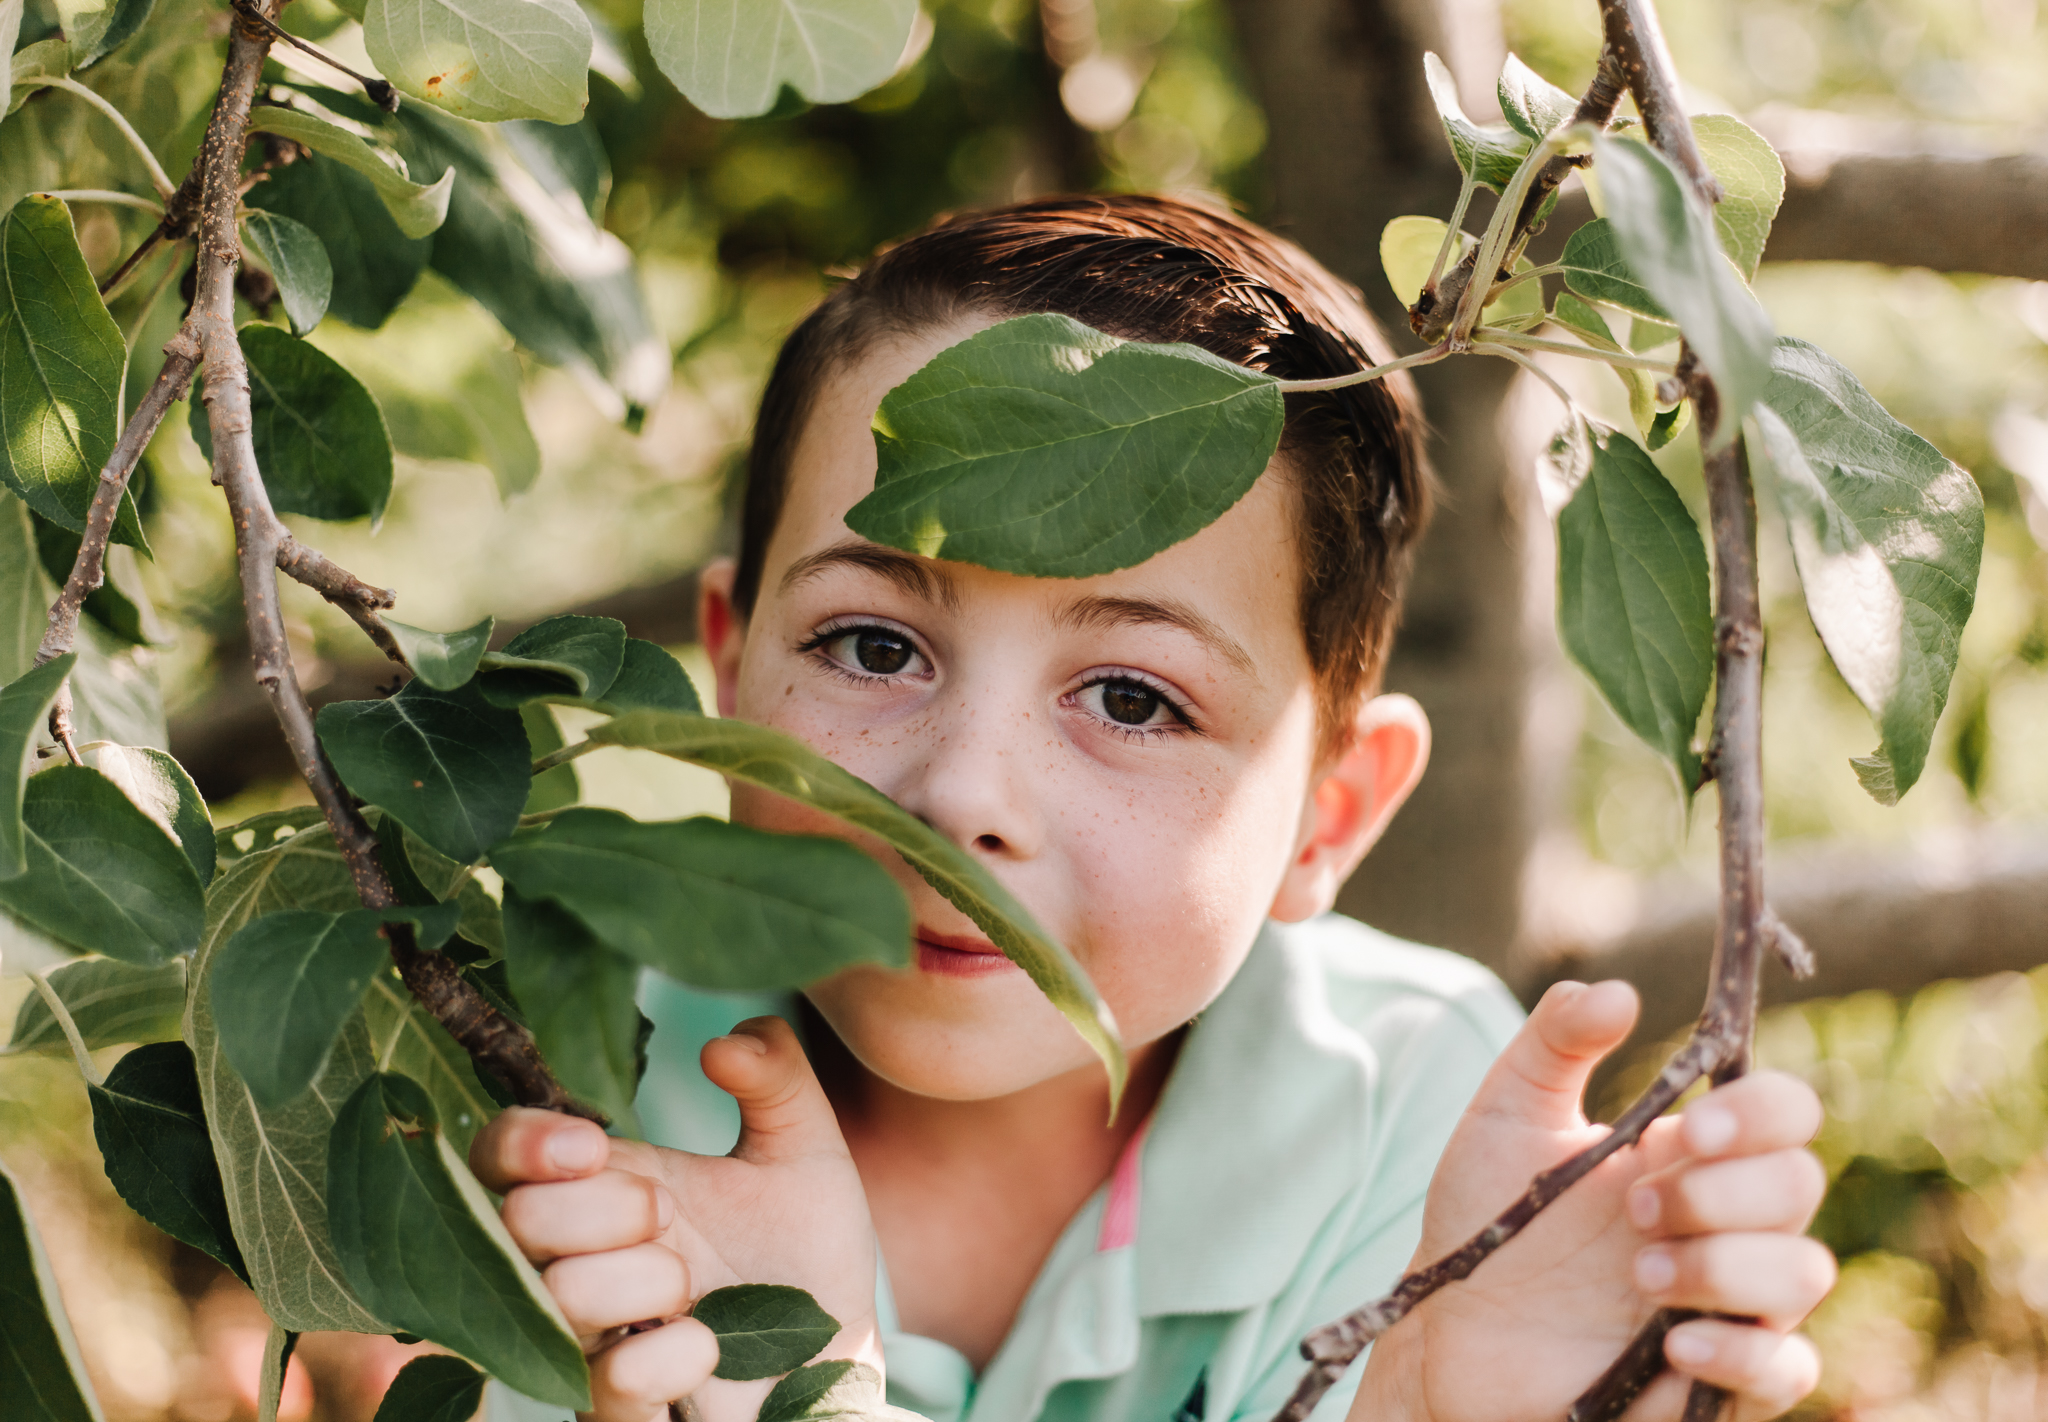 maine-lifestyle-portrait-photographer-mini-session-son-freckles-apple-orchard-fall-mini-session-2018.jpg